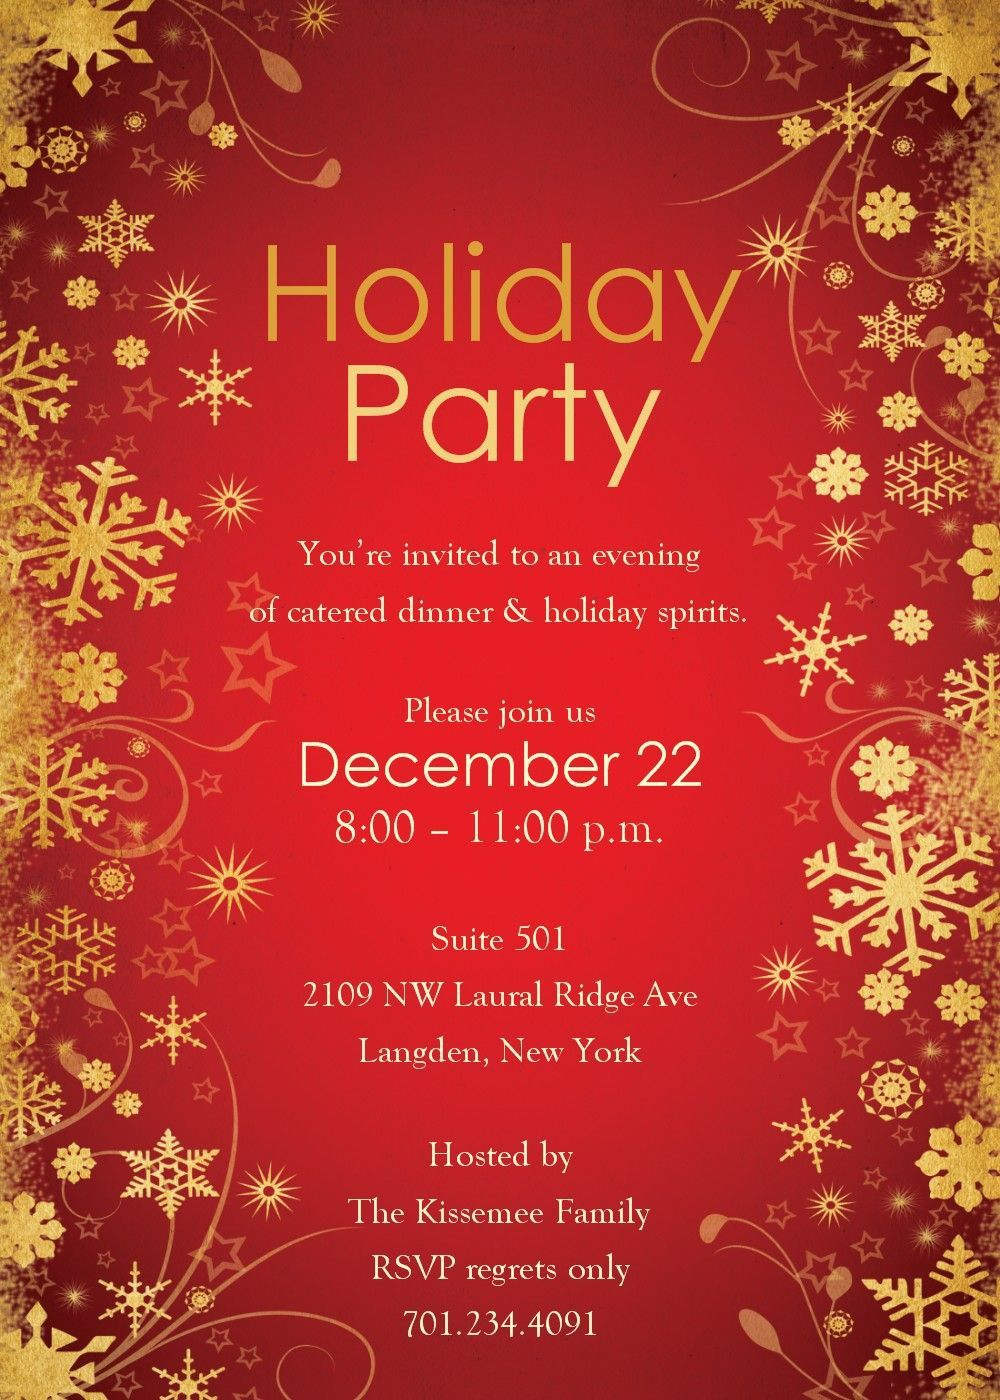 004 Fascinating Holiday Party Flyer Template Free High Resolution  OfficeFull